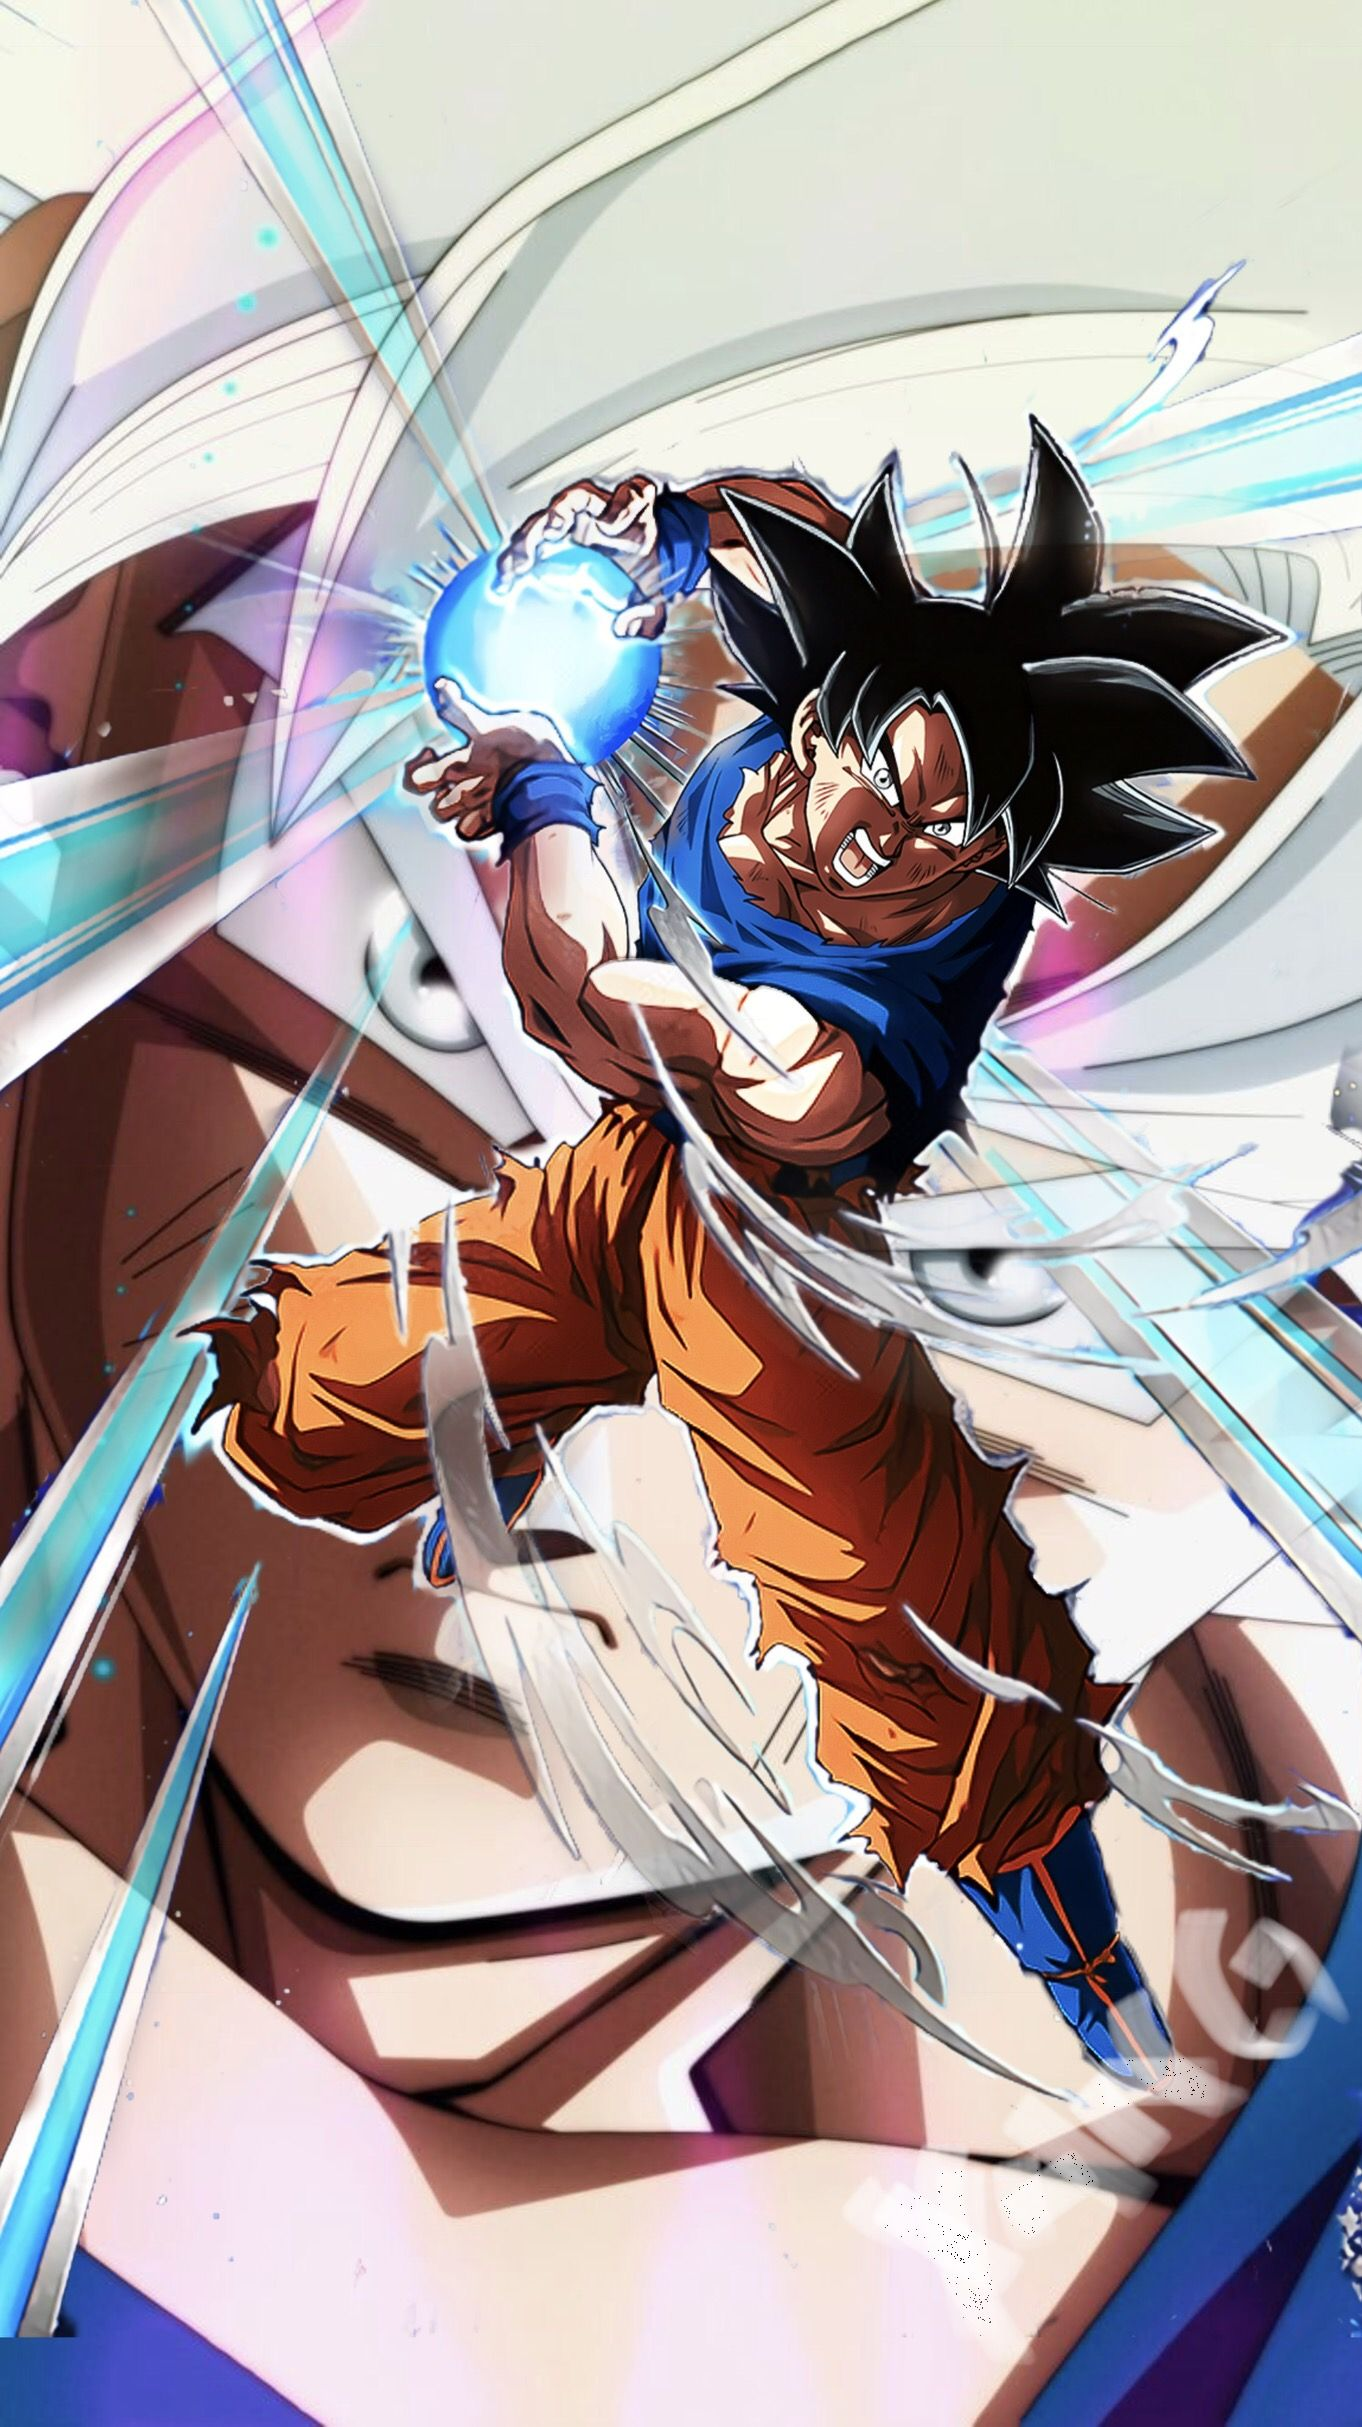 Goku Ultra Instinct Anime Dragon Ball Super Dragon Ball Goku Dragon Ball Artwork